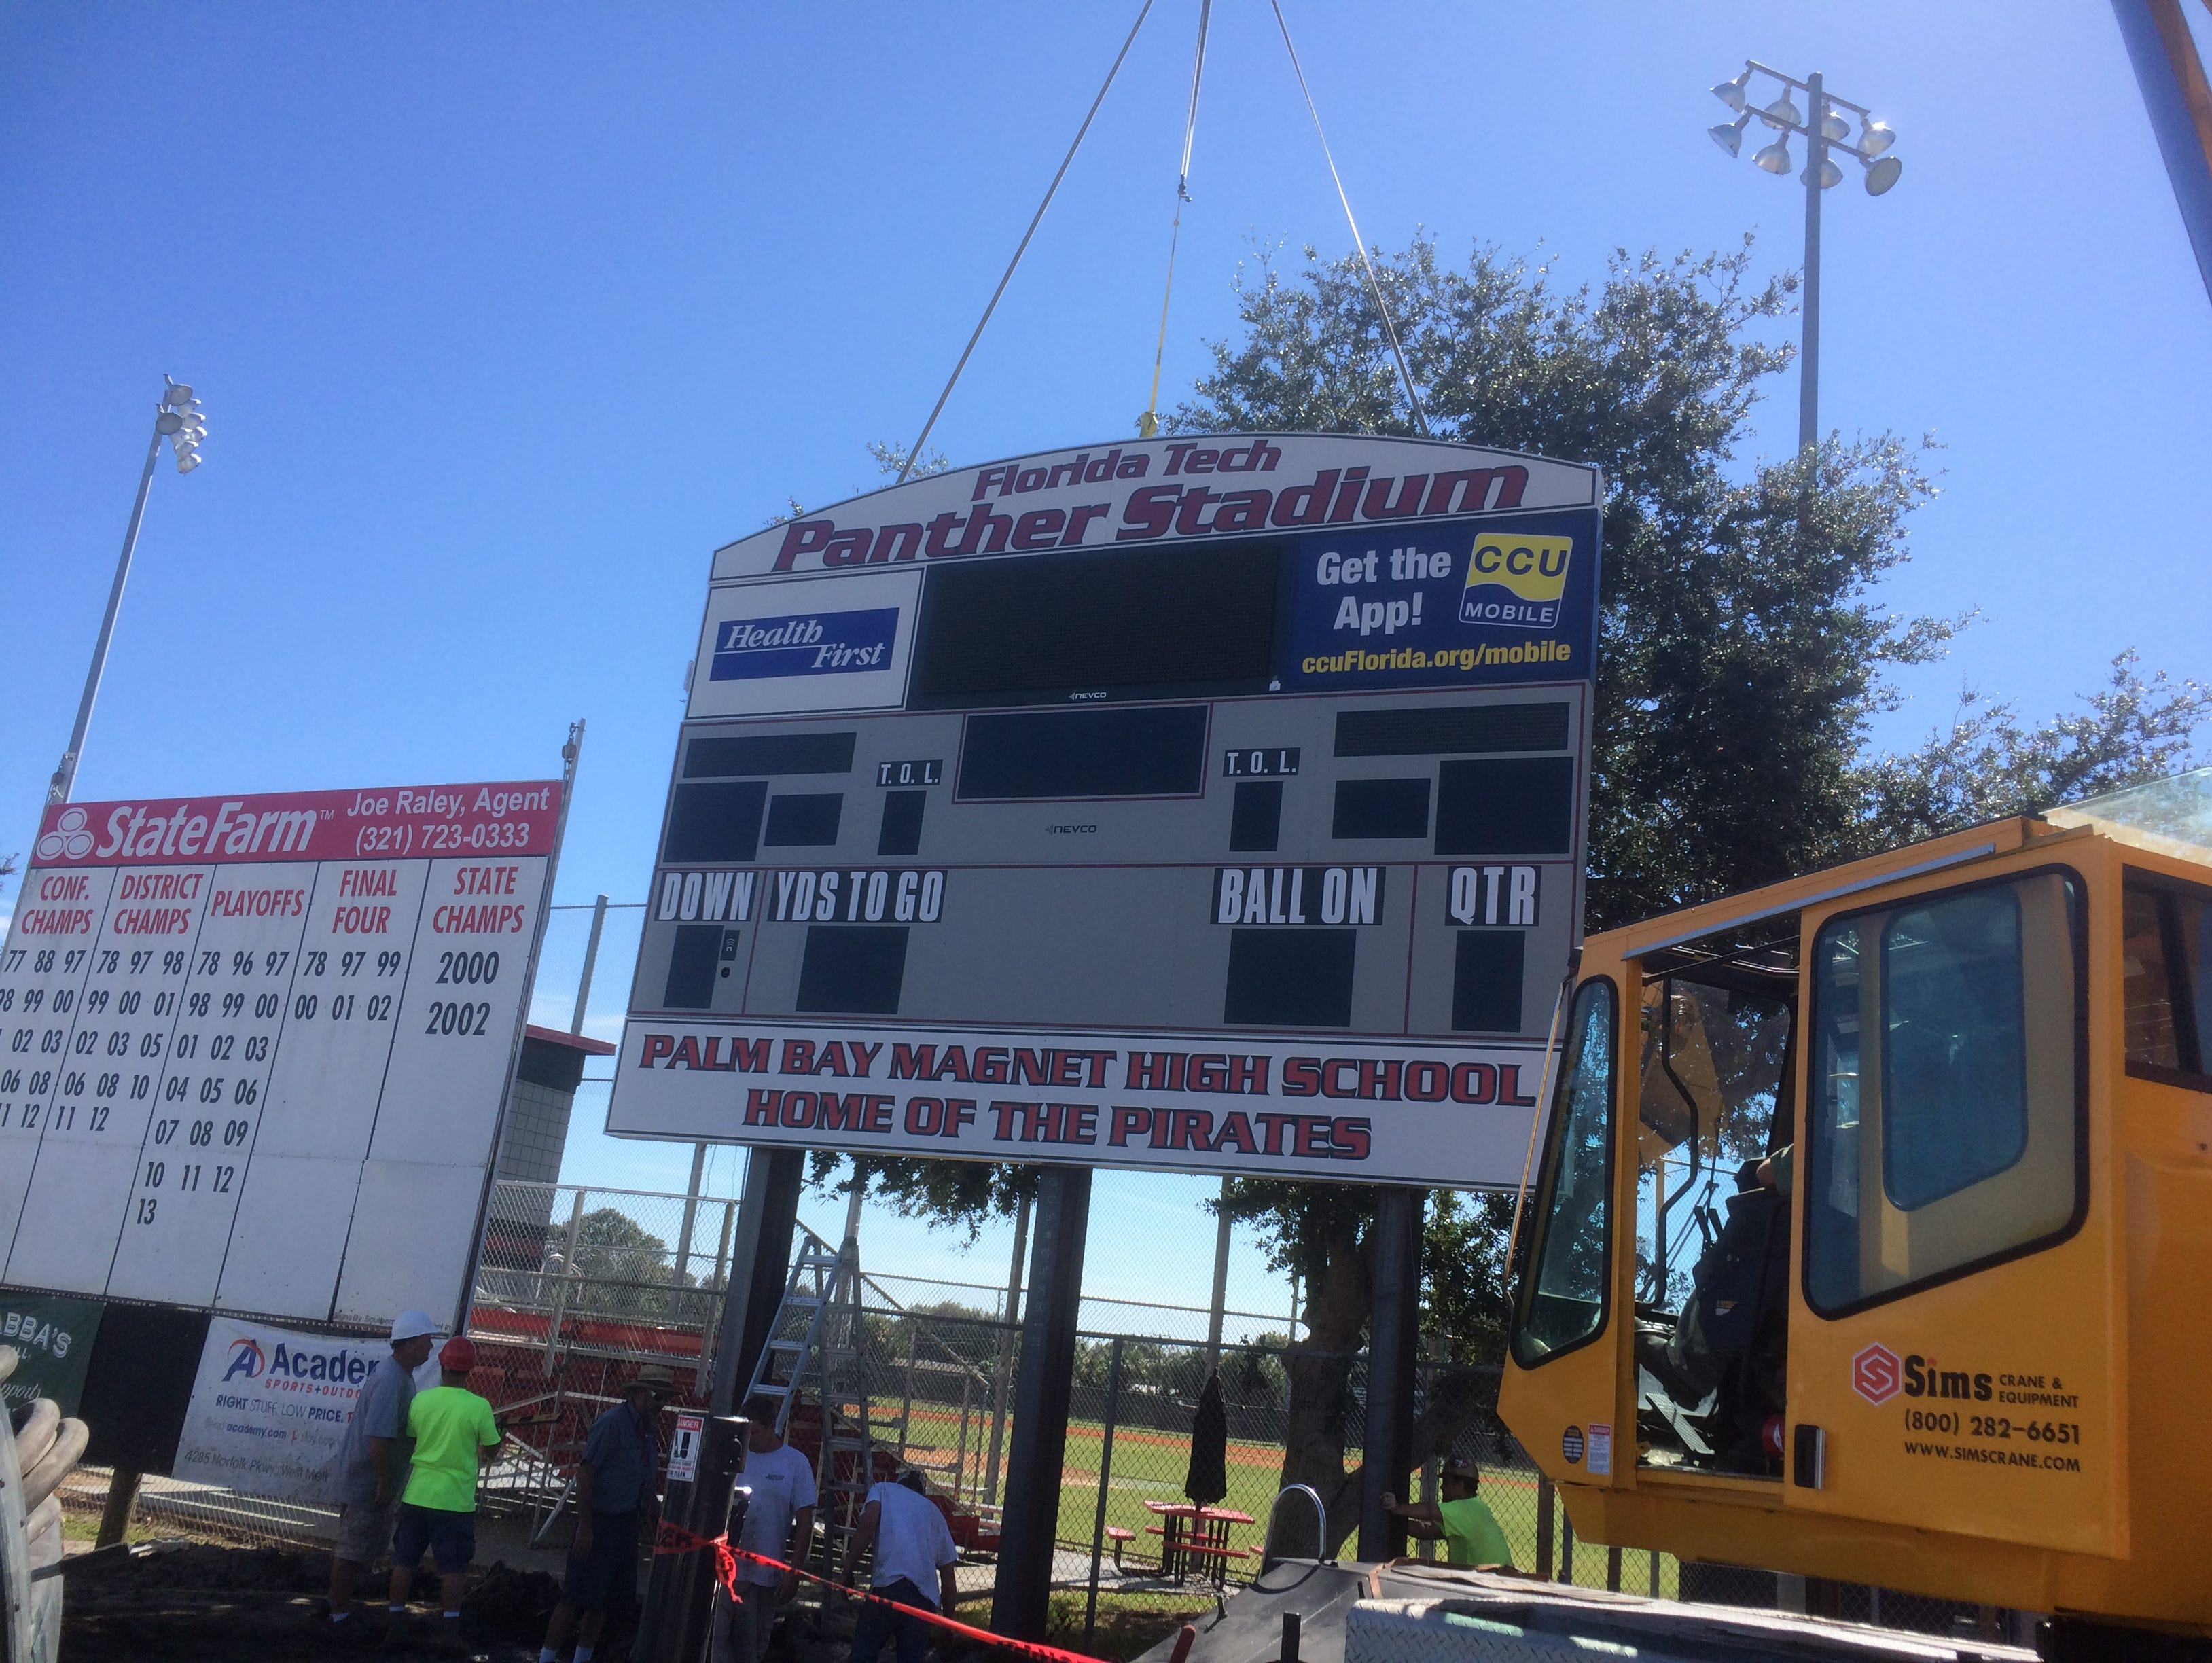 The new sign being installed at Palm Bay High School.